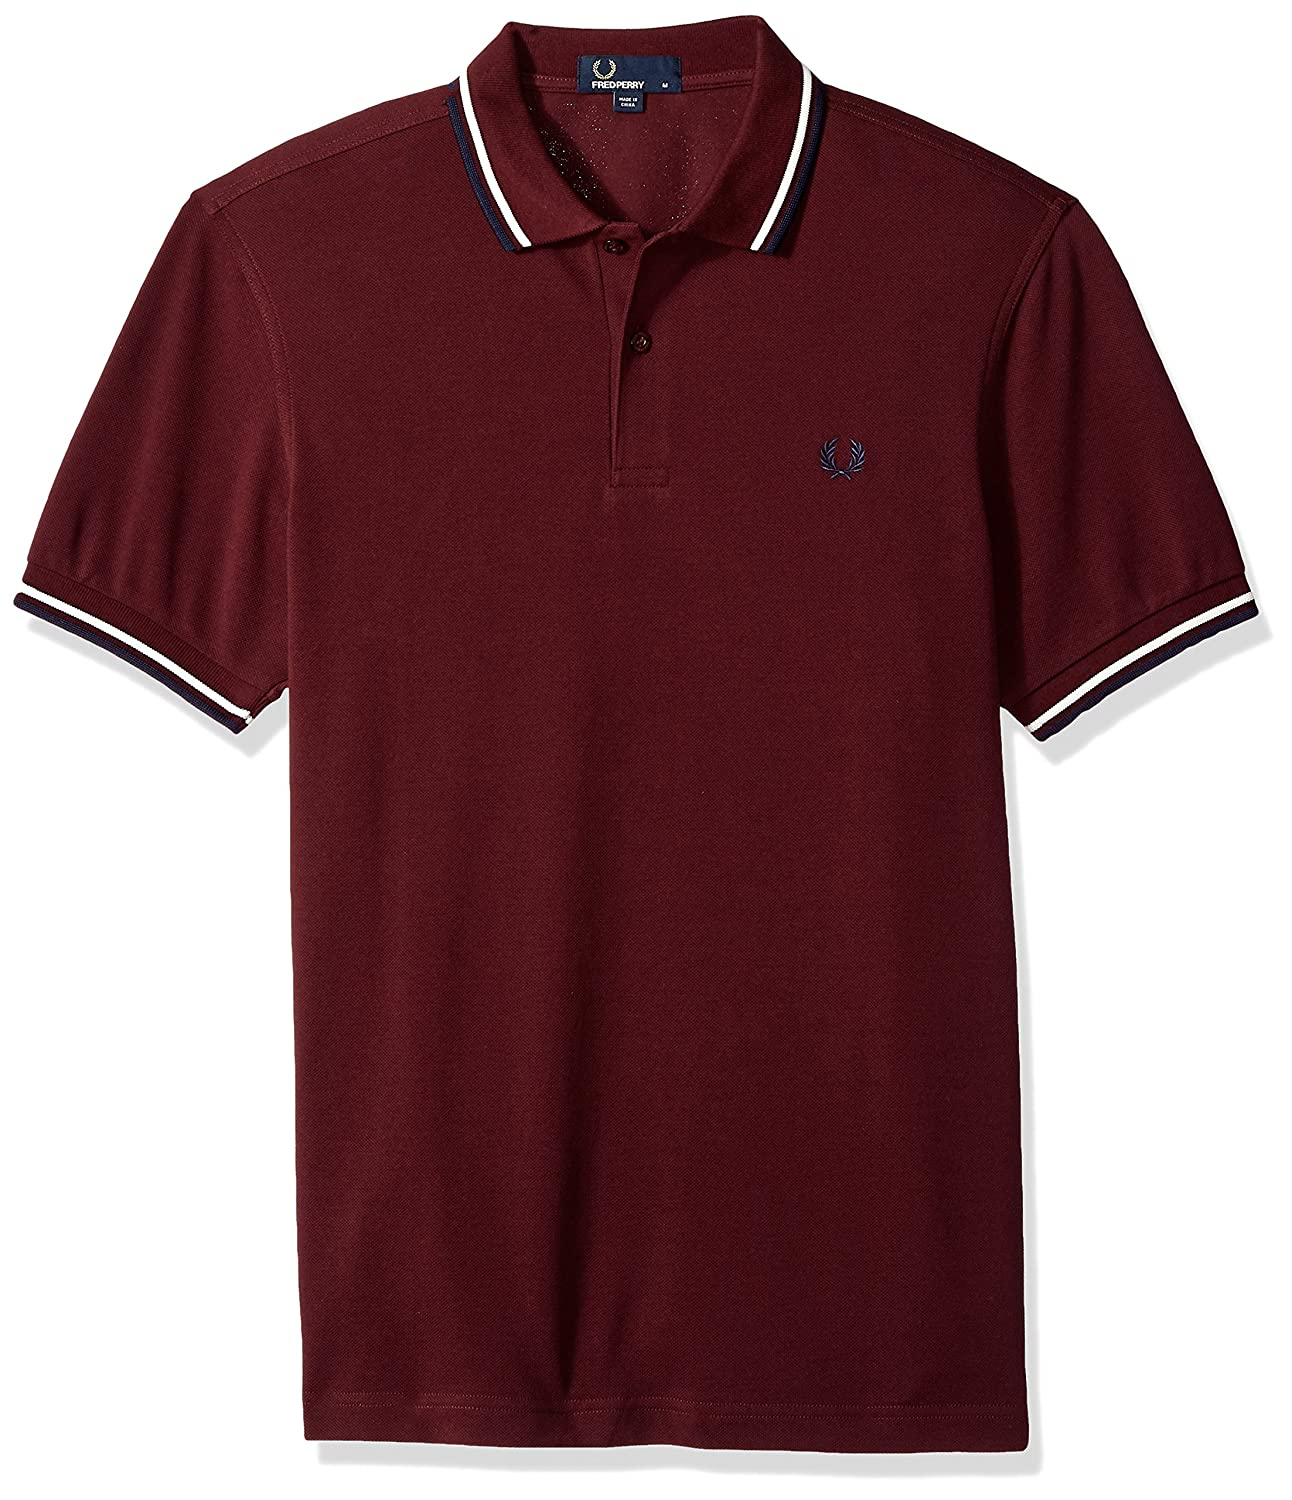 Violet (Mahogany F64) S Frouge Perry Twin Tipped Shirt Polo Homme